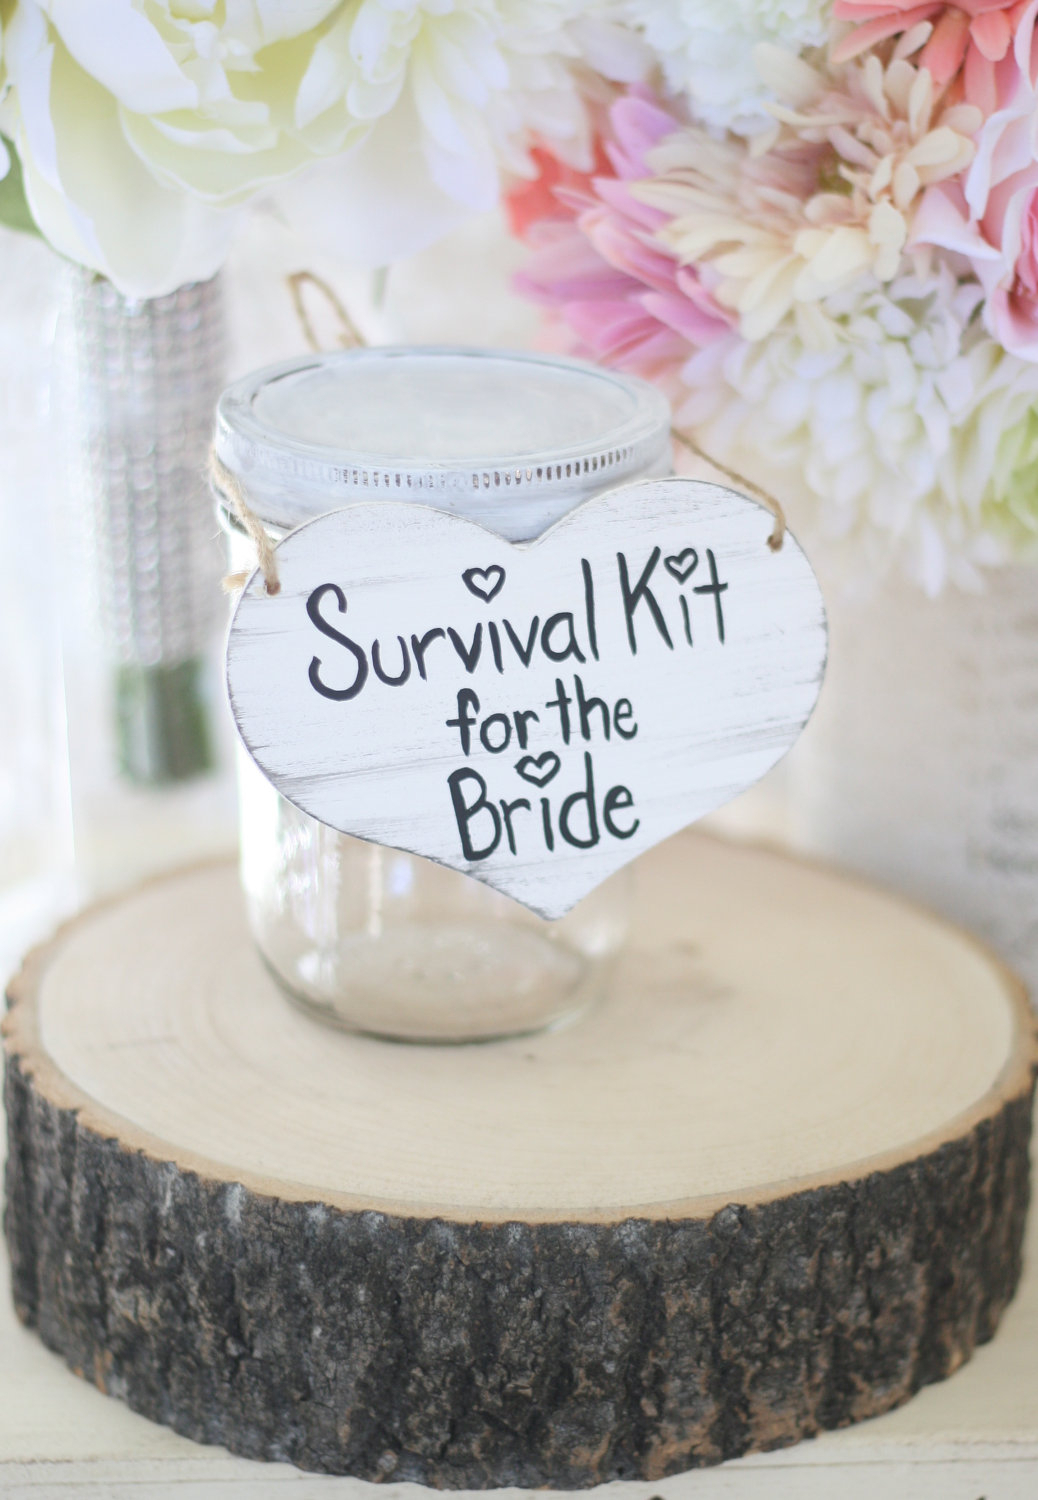 10 Perfect Unique Bridal Shower Gift Ideas For Bride unique design bridal shower gift ideas white salmon wines 1 2020